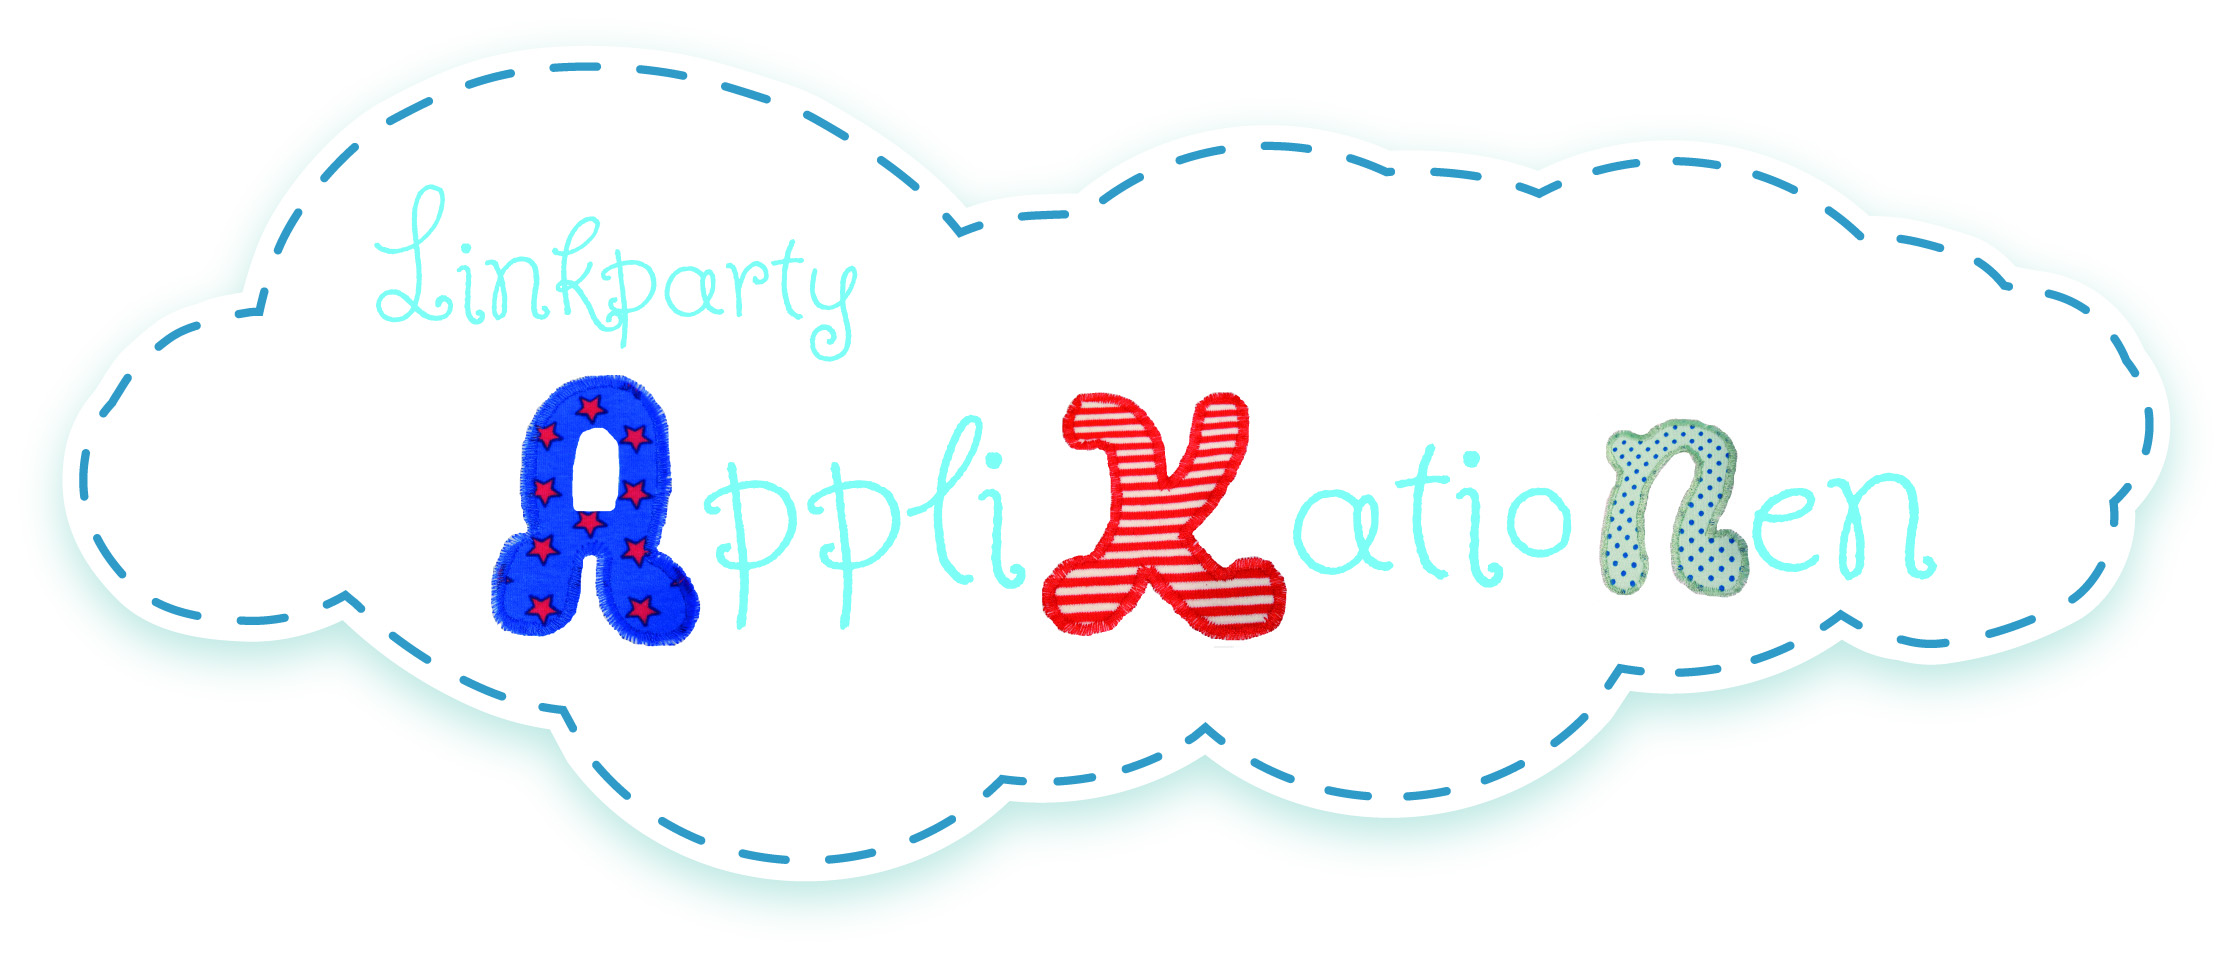 https://carlanaeht.wordpress.com/2015/07/13/linkparty-applikationen-jetzt-gehts-los/